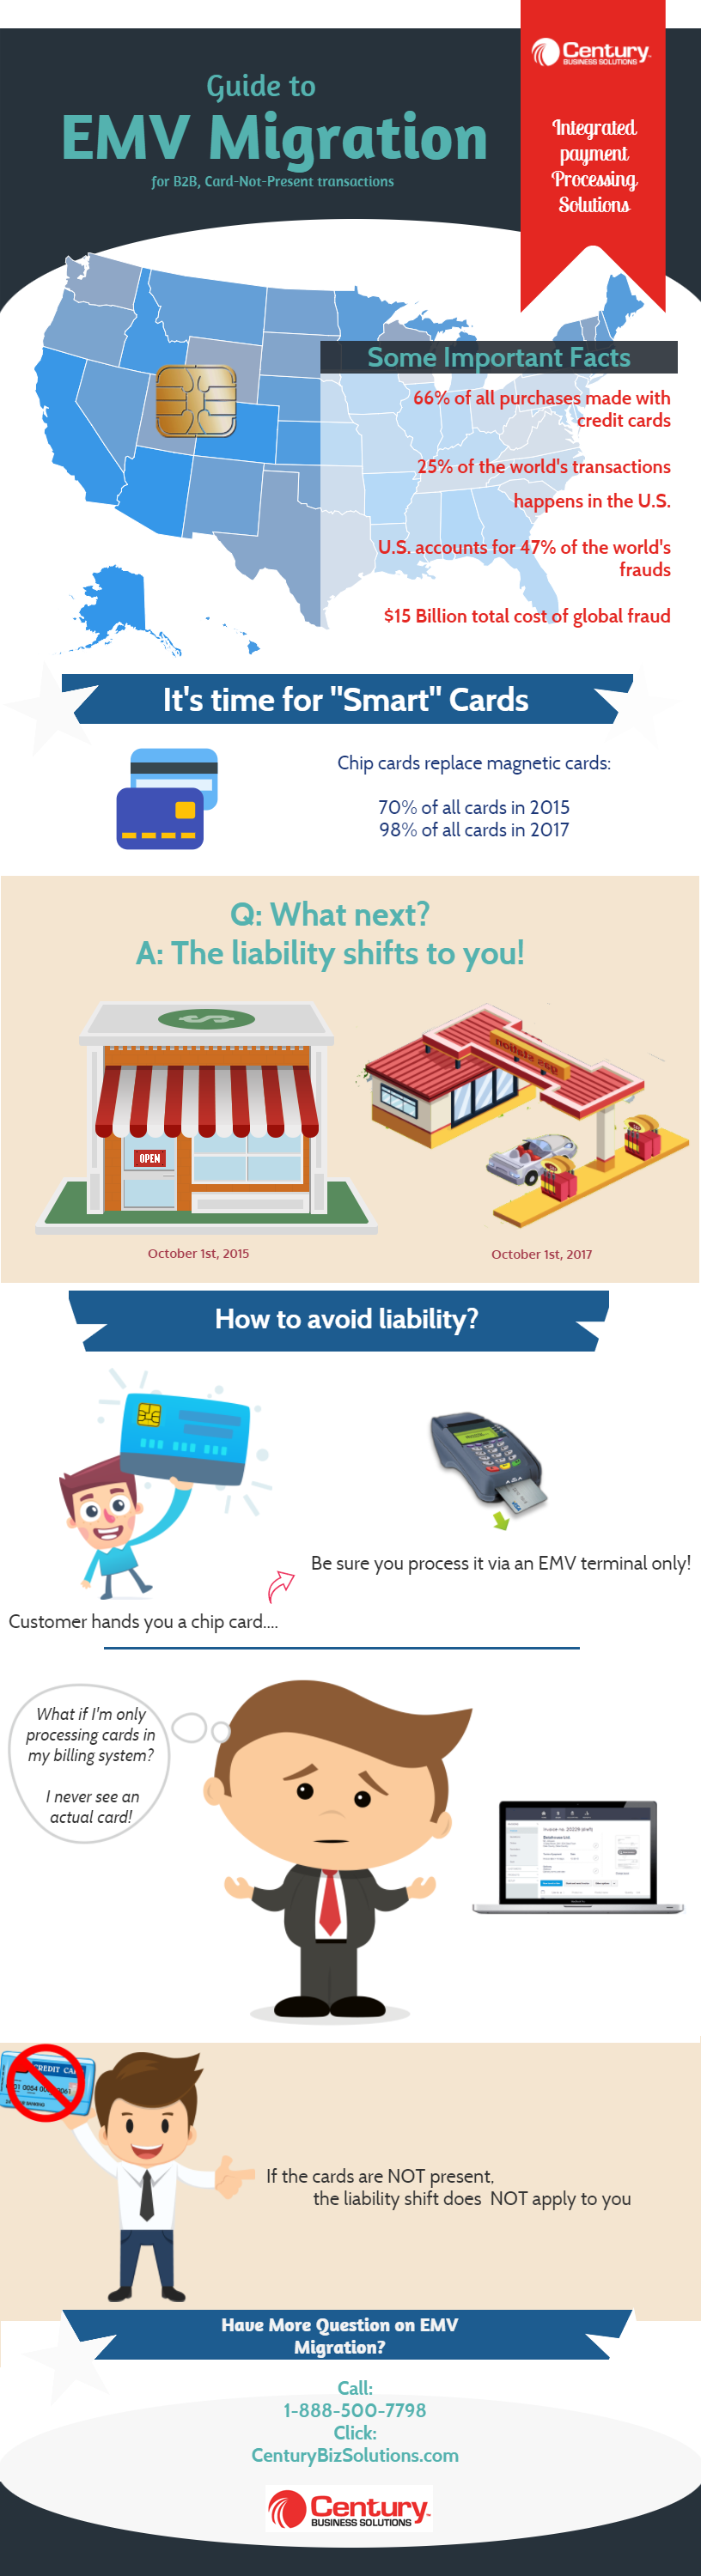 EMV, CNP, and liability